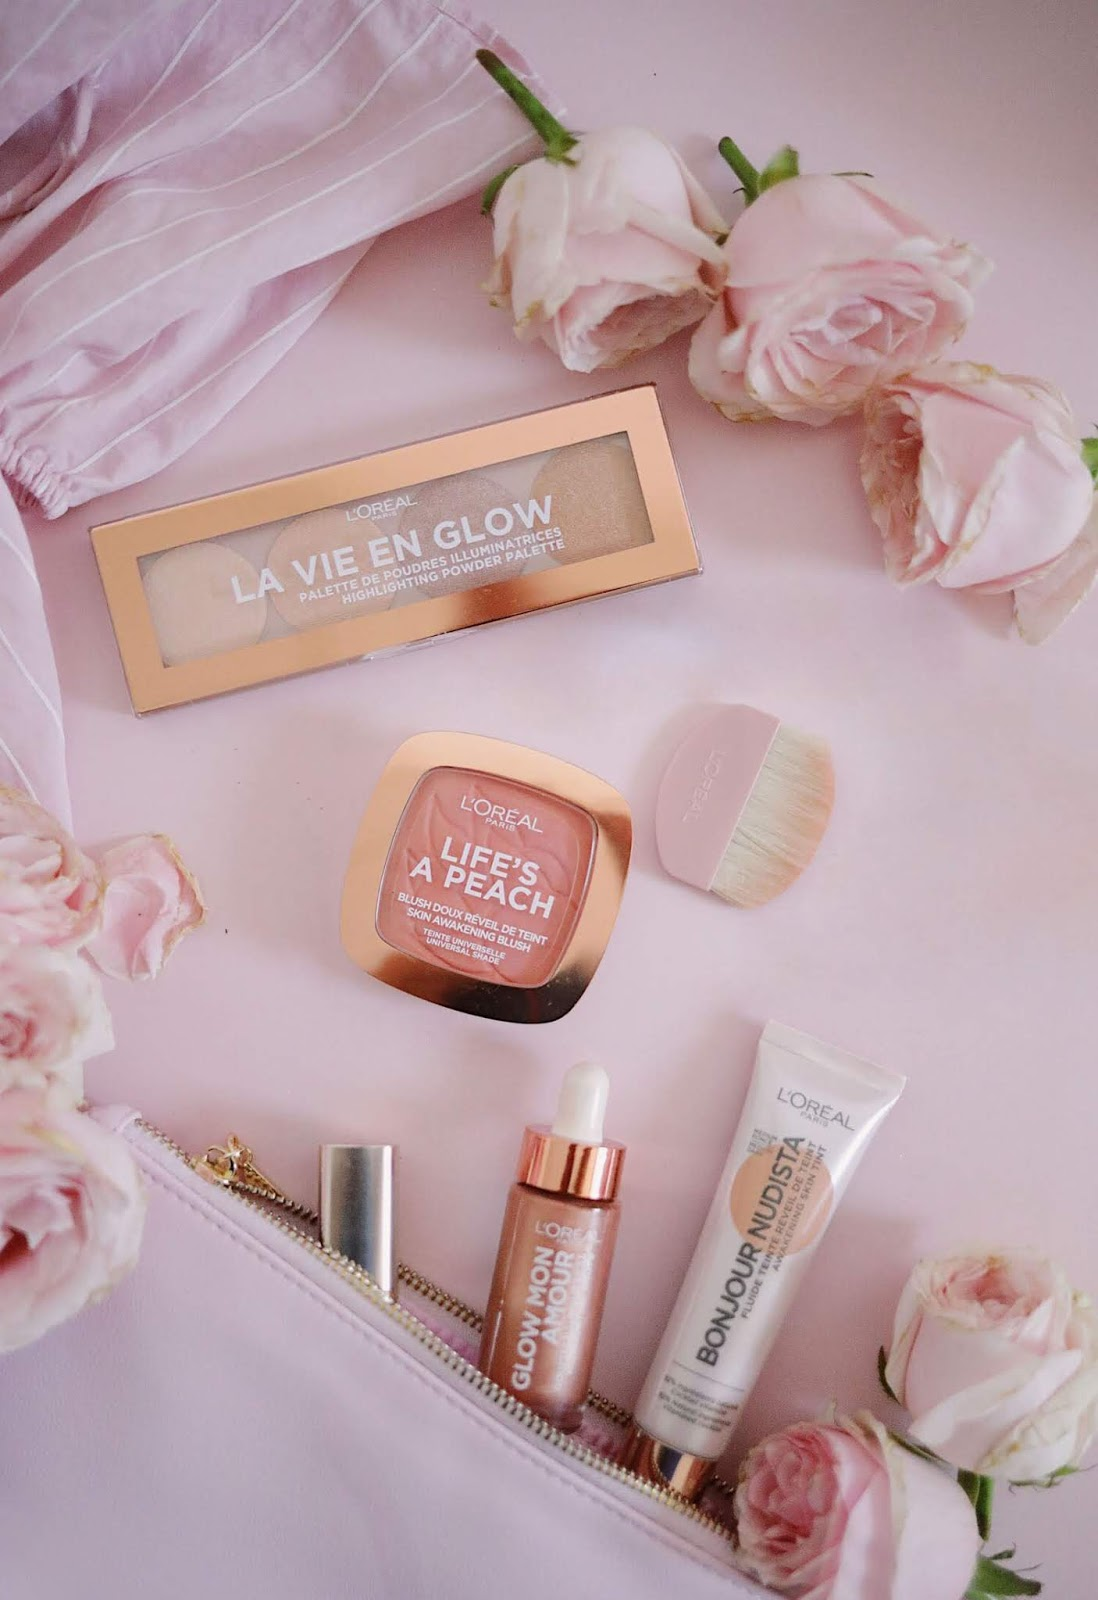 wake up and glow , l'oréal Paris ,loreal Paris , life's a peach , la vie en glow , glow mon amour , bonjour nudista , revue, avis , Swatch , rosemademoiselle , rose mademoiselle, blog beauté , Paris ,